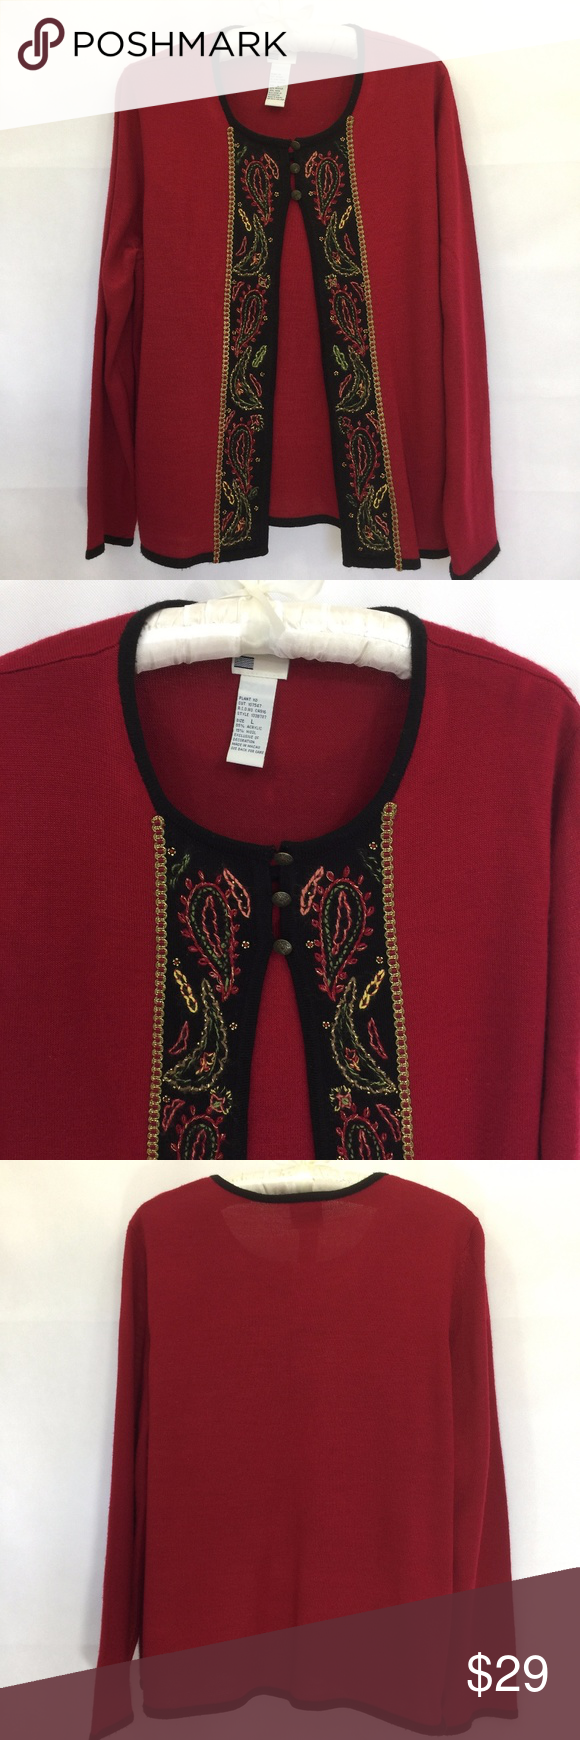 Red and black flannel cardigan  Koret Faux Twinset Sweater Wool Blend Embroidered  Metal buttons